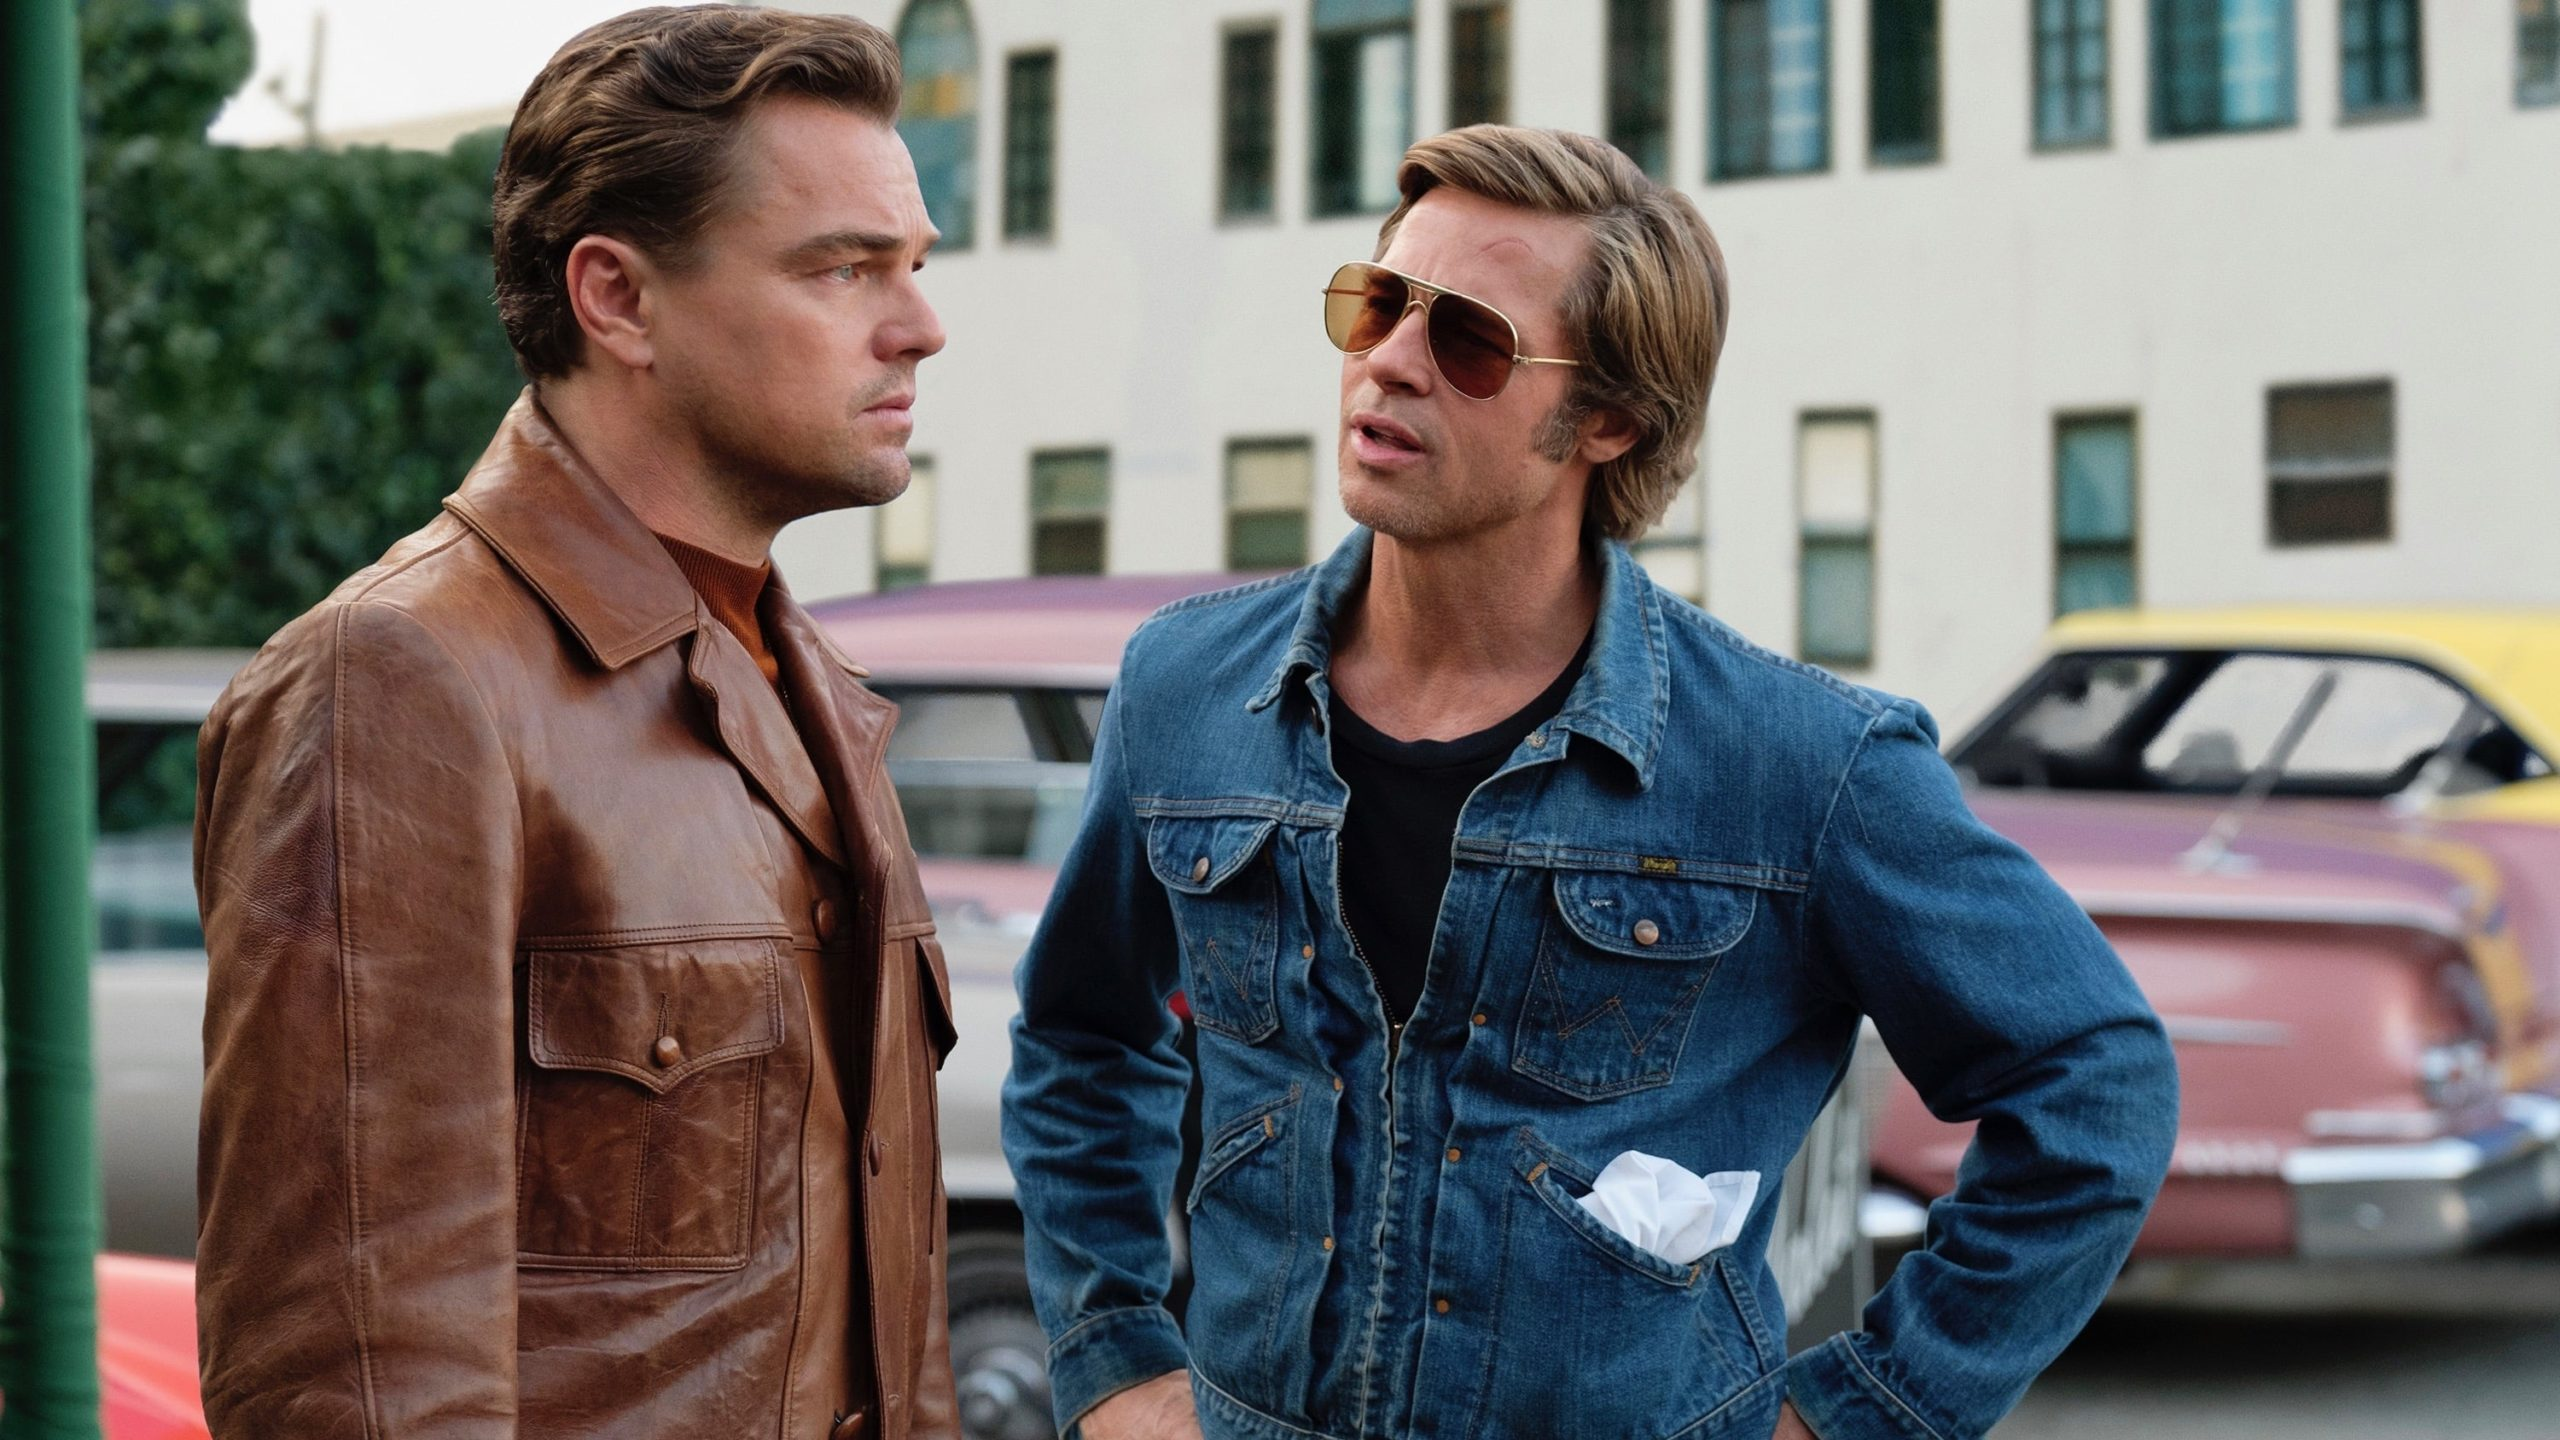 Leonard DiCaprio and Brad Pitt In Once Upon A Time... In Hollywood